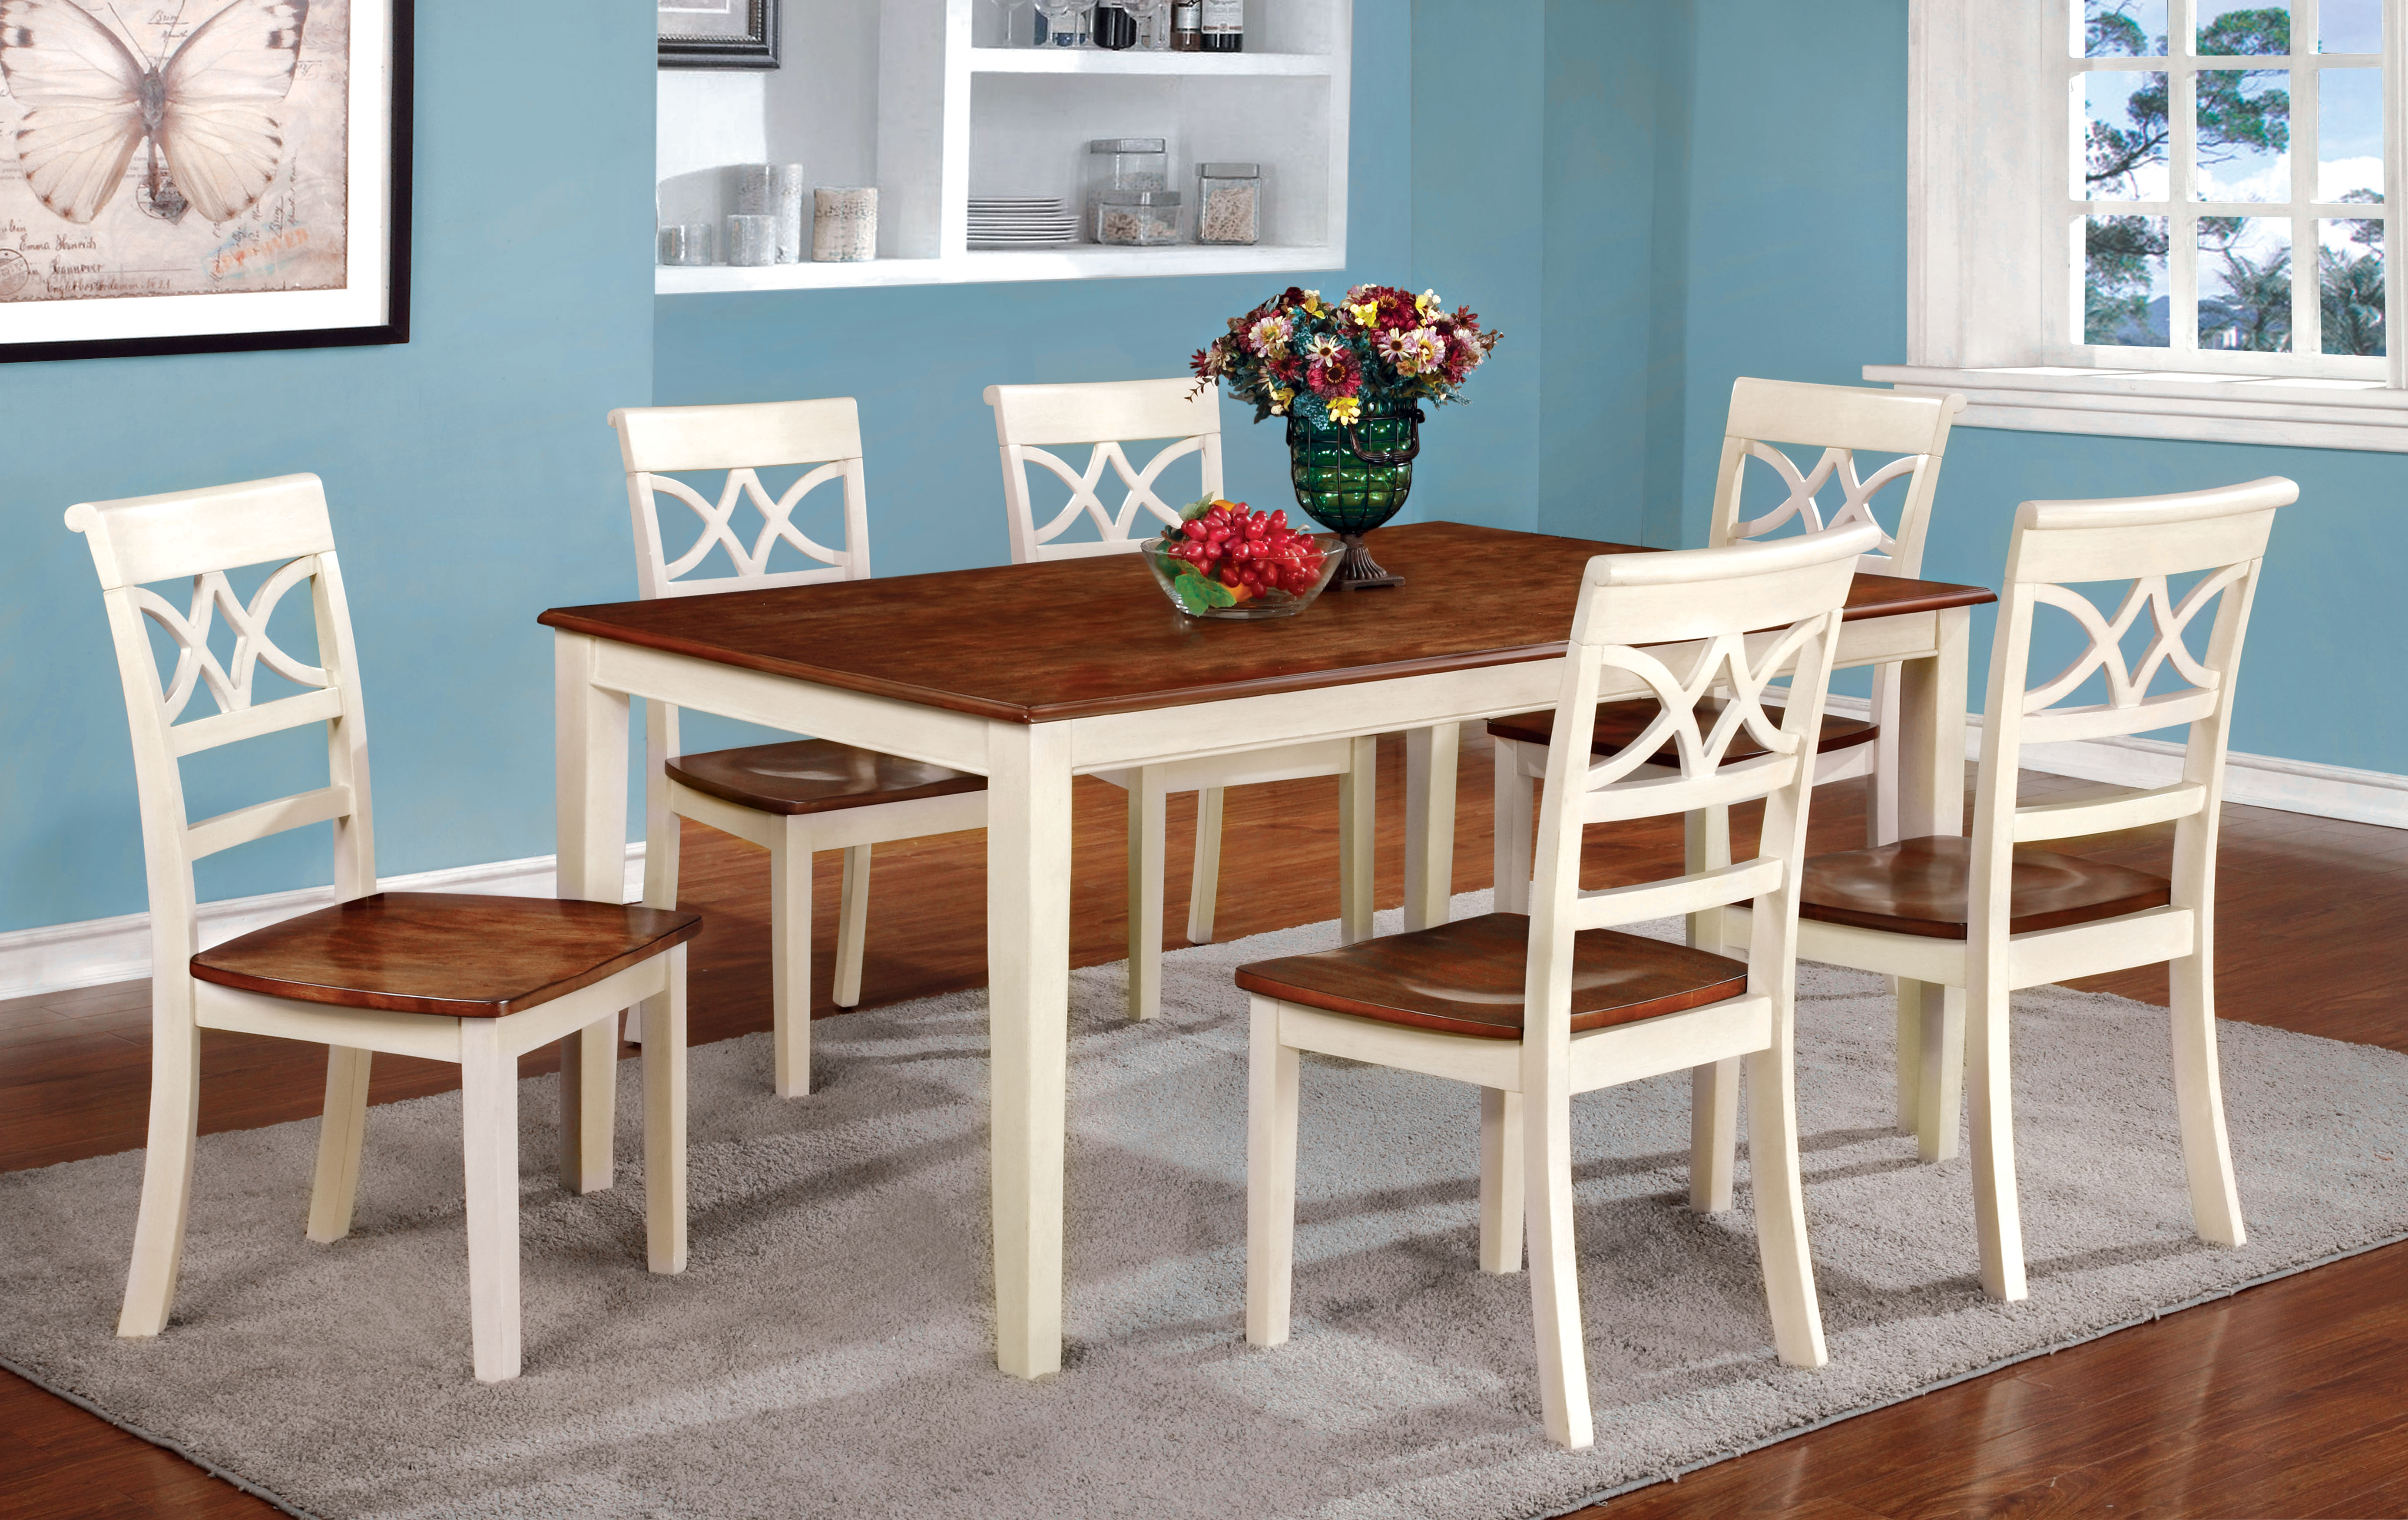 Furniture of America TwoTone Adelle Country Style Dining